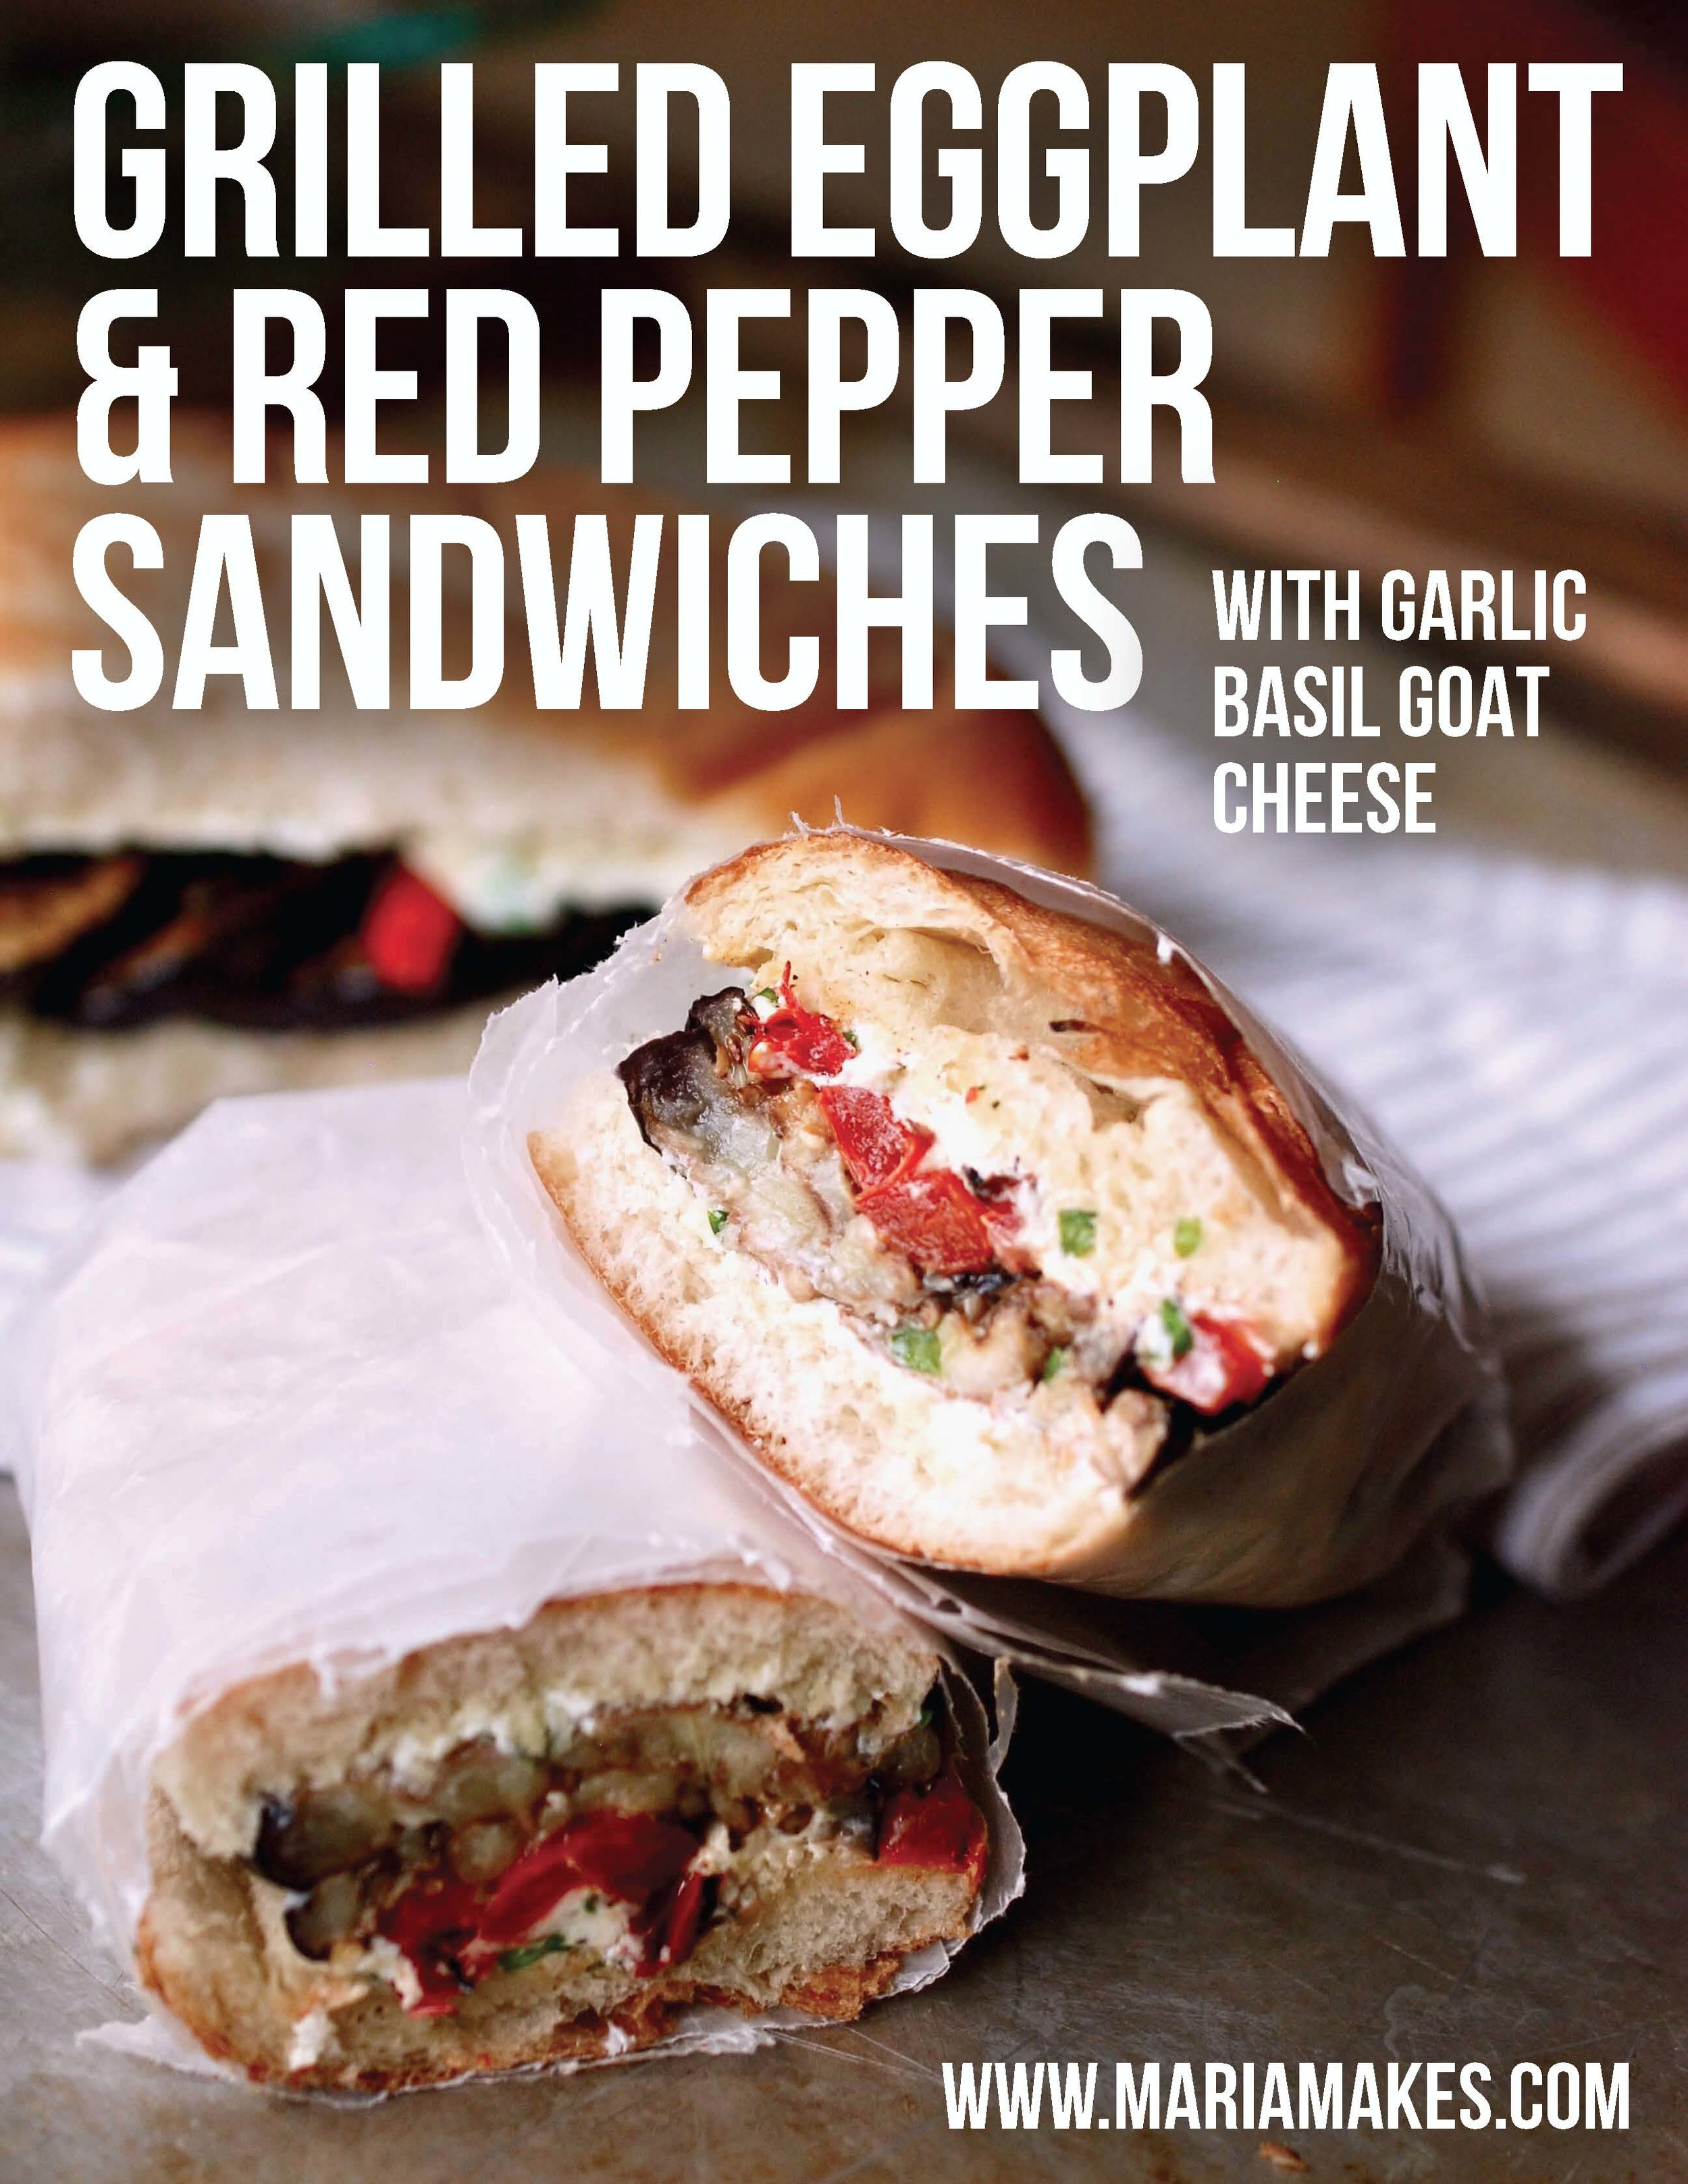 Grilled Eggplant and Red Peppers Sandwiches with Garlic Basil Goat Cheese – Maria Makes: SO simple. SO delicious. Toasted hoagie rolls layered with grilled eggplant and grilled red peppers, all pulled together with a tangy, garlicky, basil-y goat cheese spread.